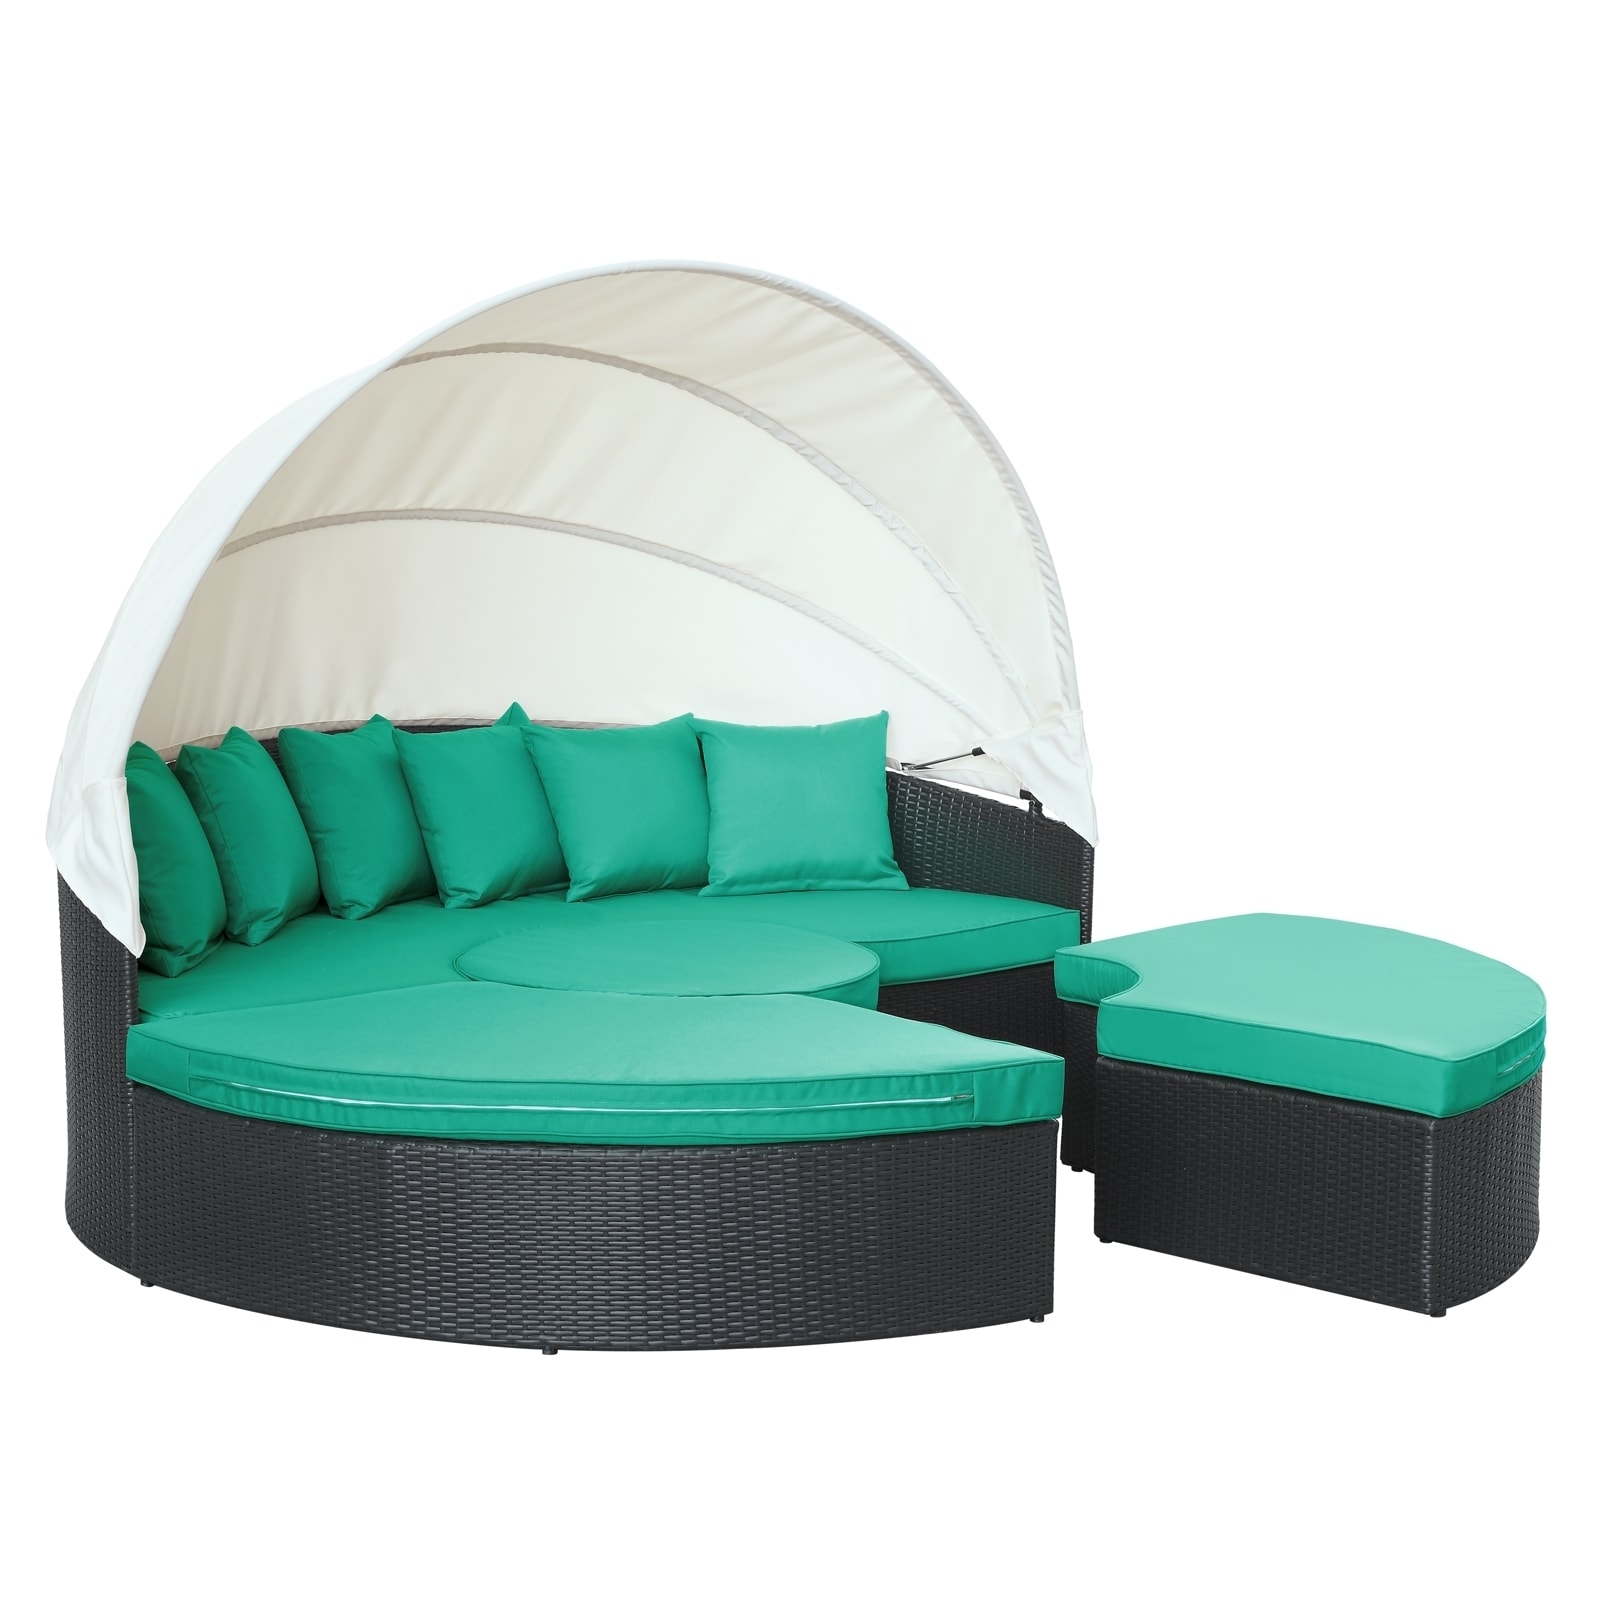 Quest Circular Outdoor Wicker Rattan Patio Daybed With Canopy   Free  Shipping Today   Overstock.com   16055559